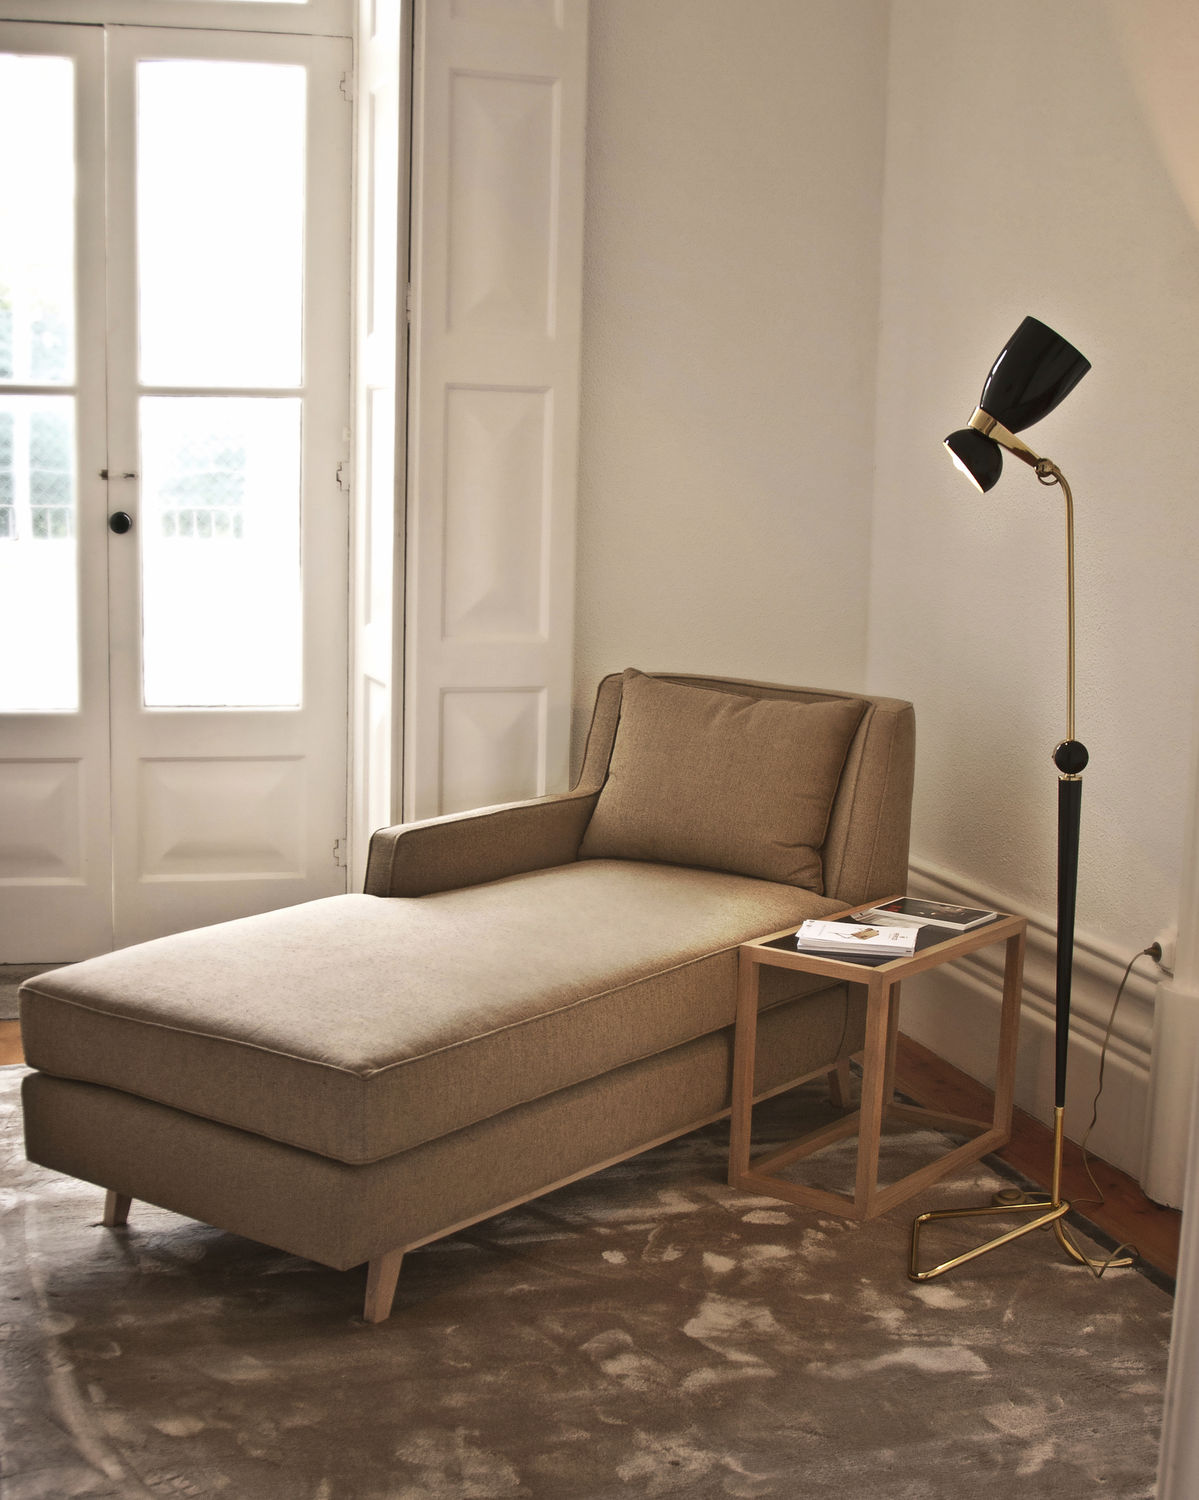 iconic floor lamp Bright Ideas: Get To Know This Iconic Floor Lamp! Bright Ideas Get To Know This Iconic Floor Lamp 3